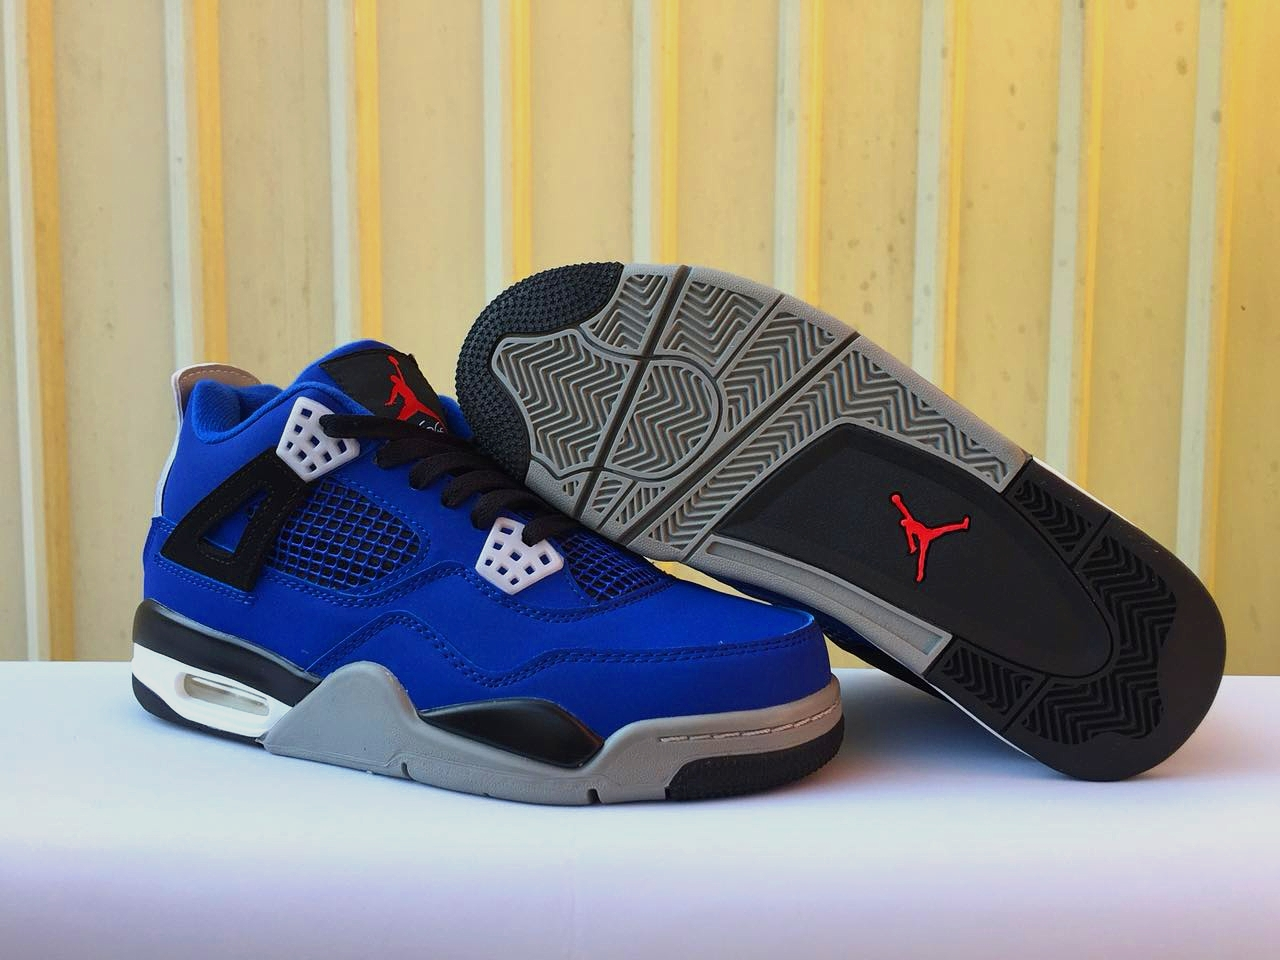 New Air Jordan 4 Eminem Royal Blue Black Shoes